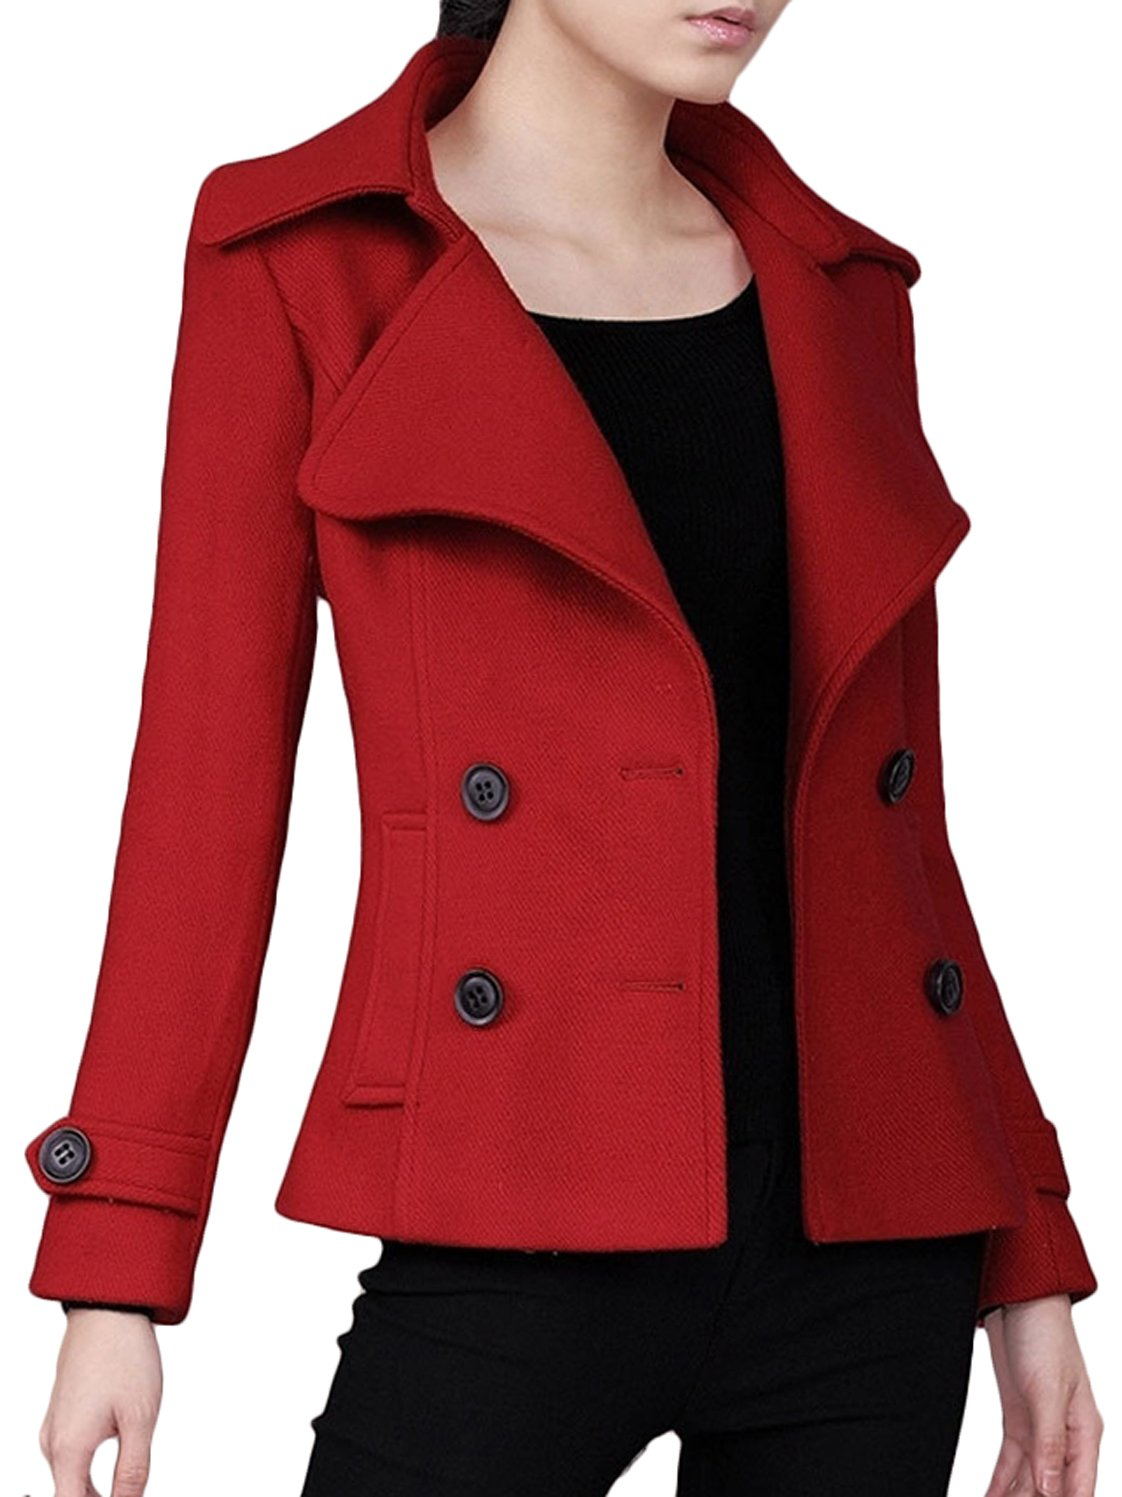 Youhan Women's Woolen Pea Coat Double Breasted Short Trench Coat (Small, Red)